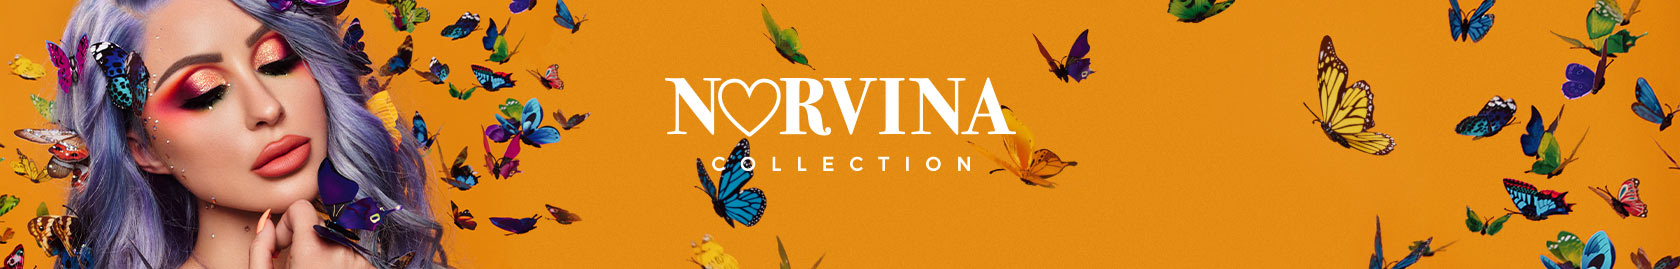 Norvina Collection